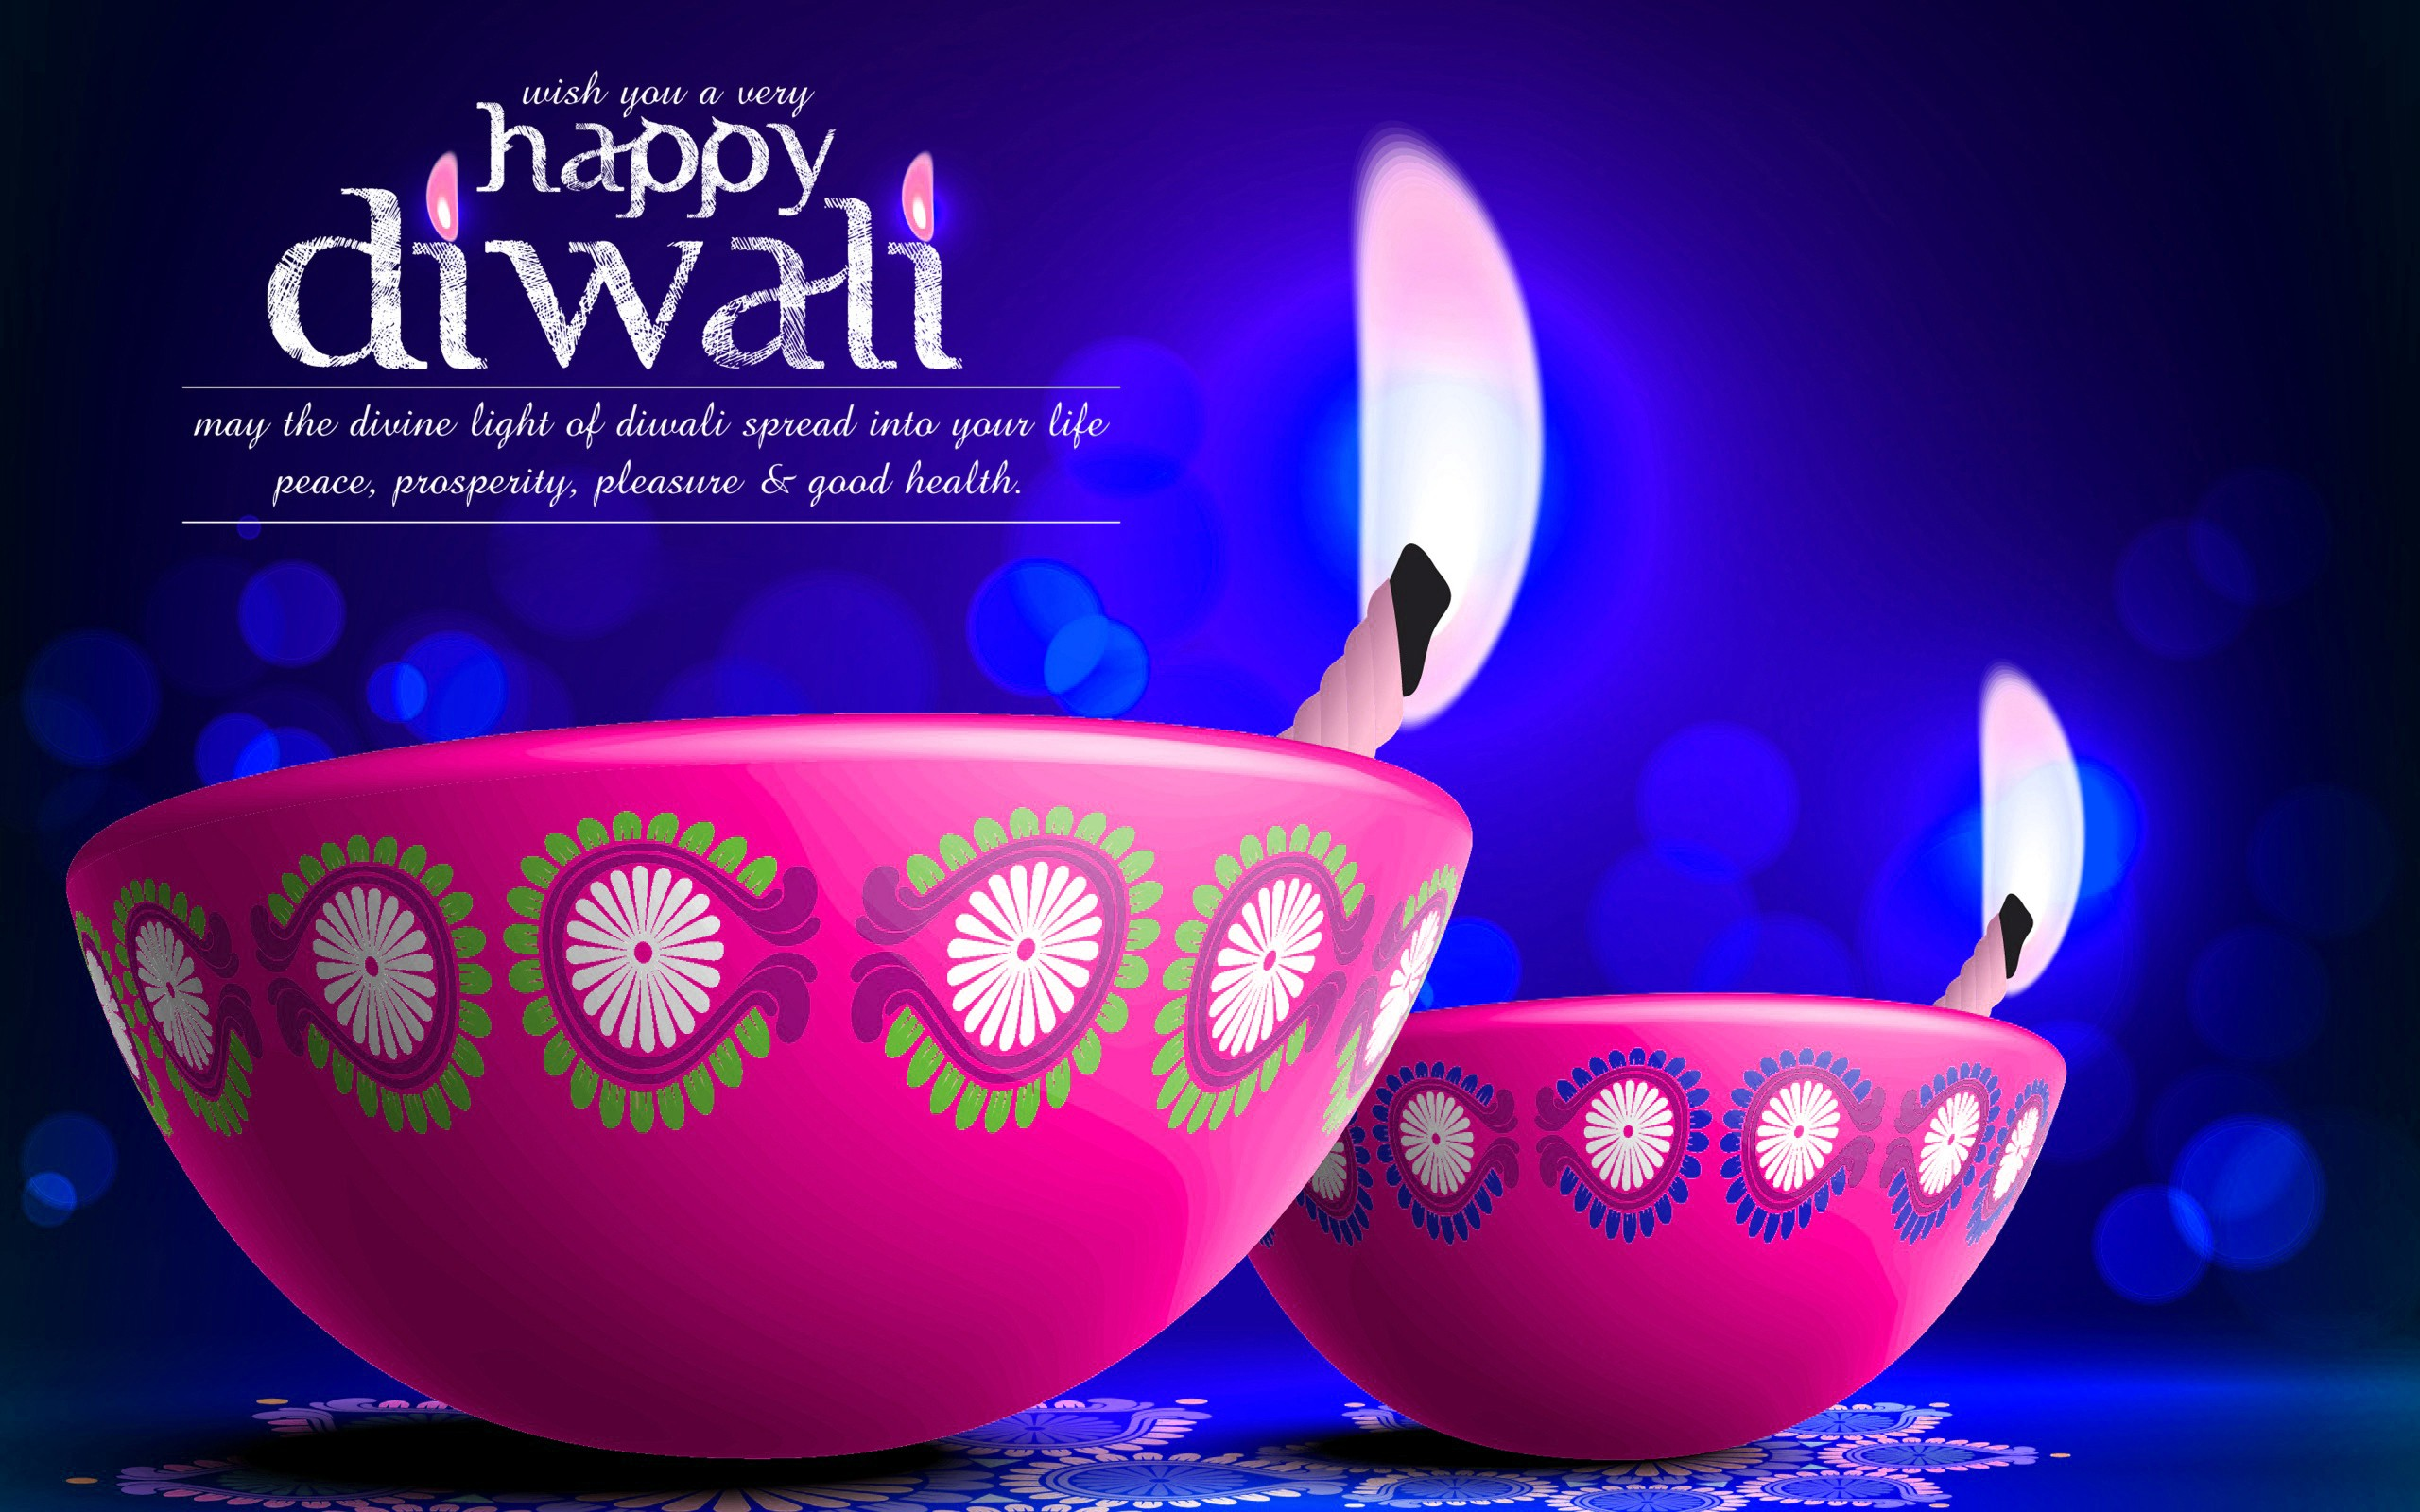 Happy Diwali 2018 images, quotes, wishes, SMS, greetings ...